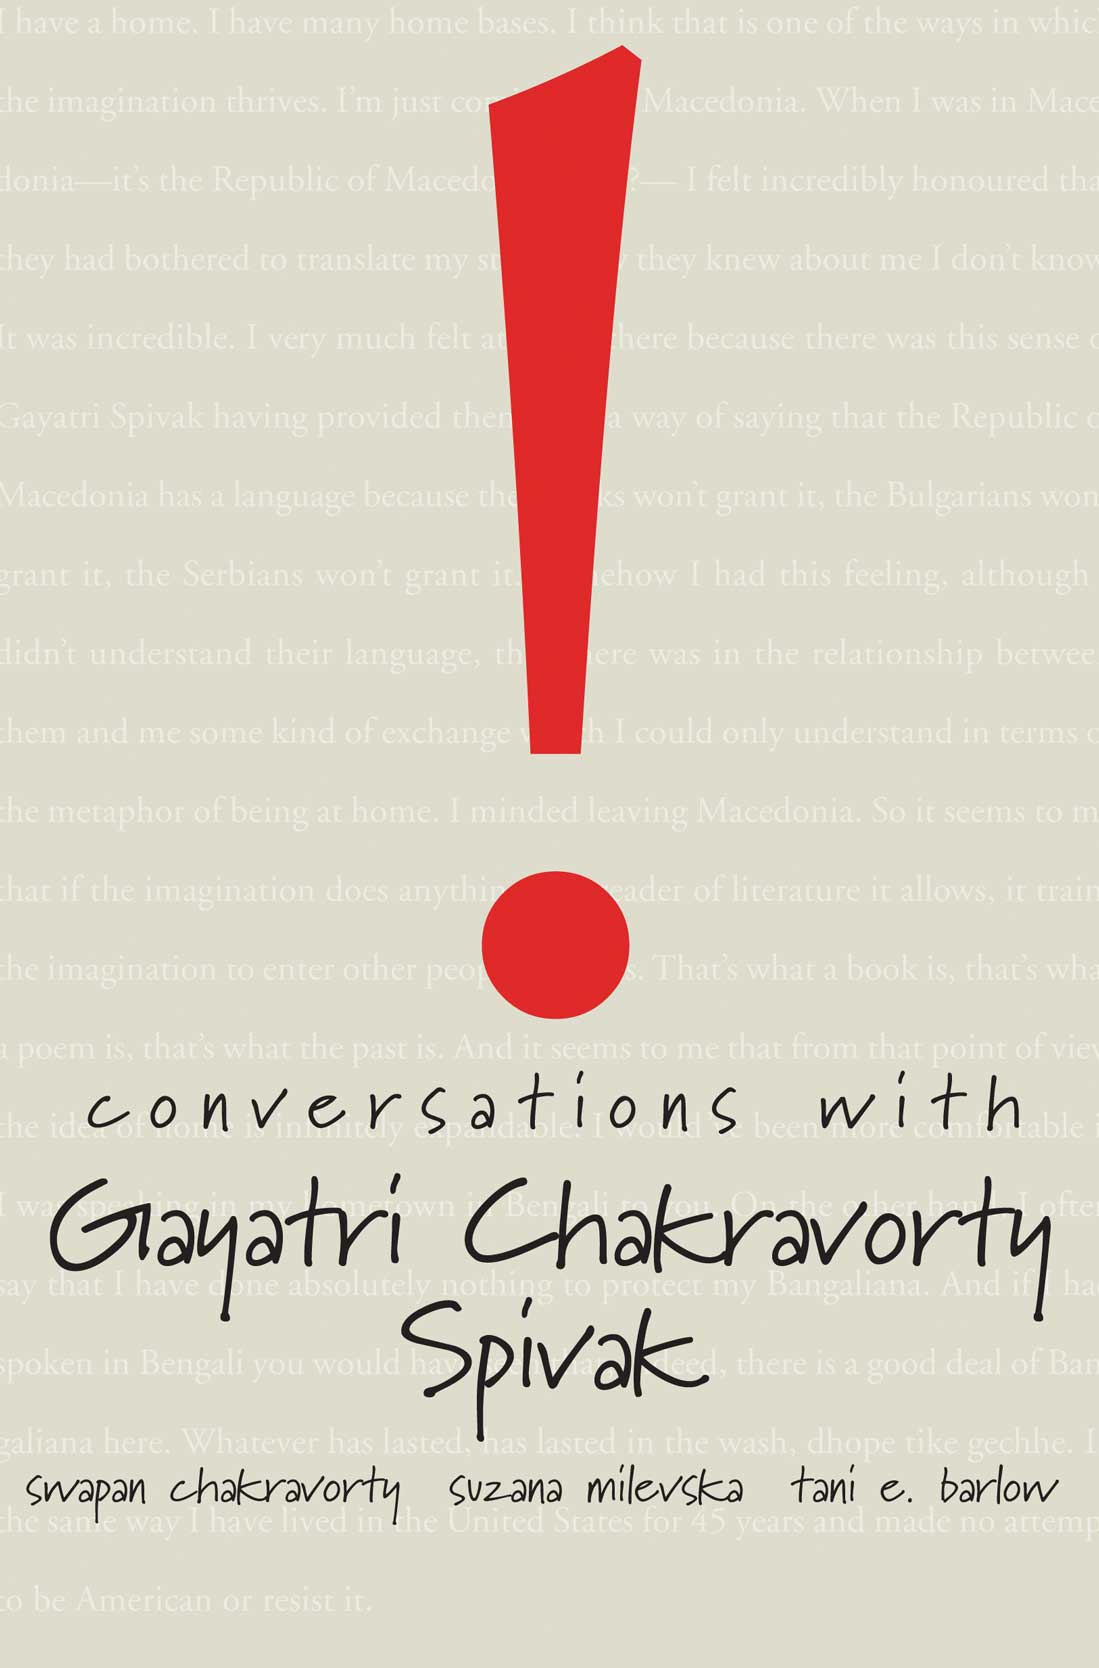 Conversations with Gayatri Chakravorty Spivak by Gayatri Chakravorty Spivak | Seagull Books